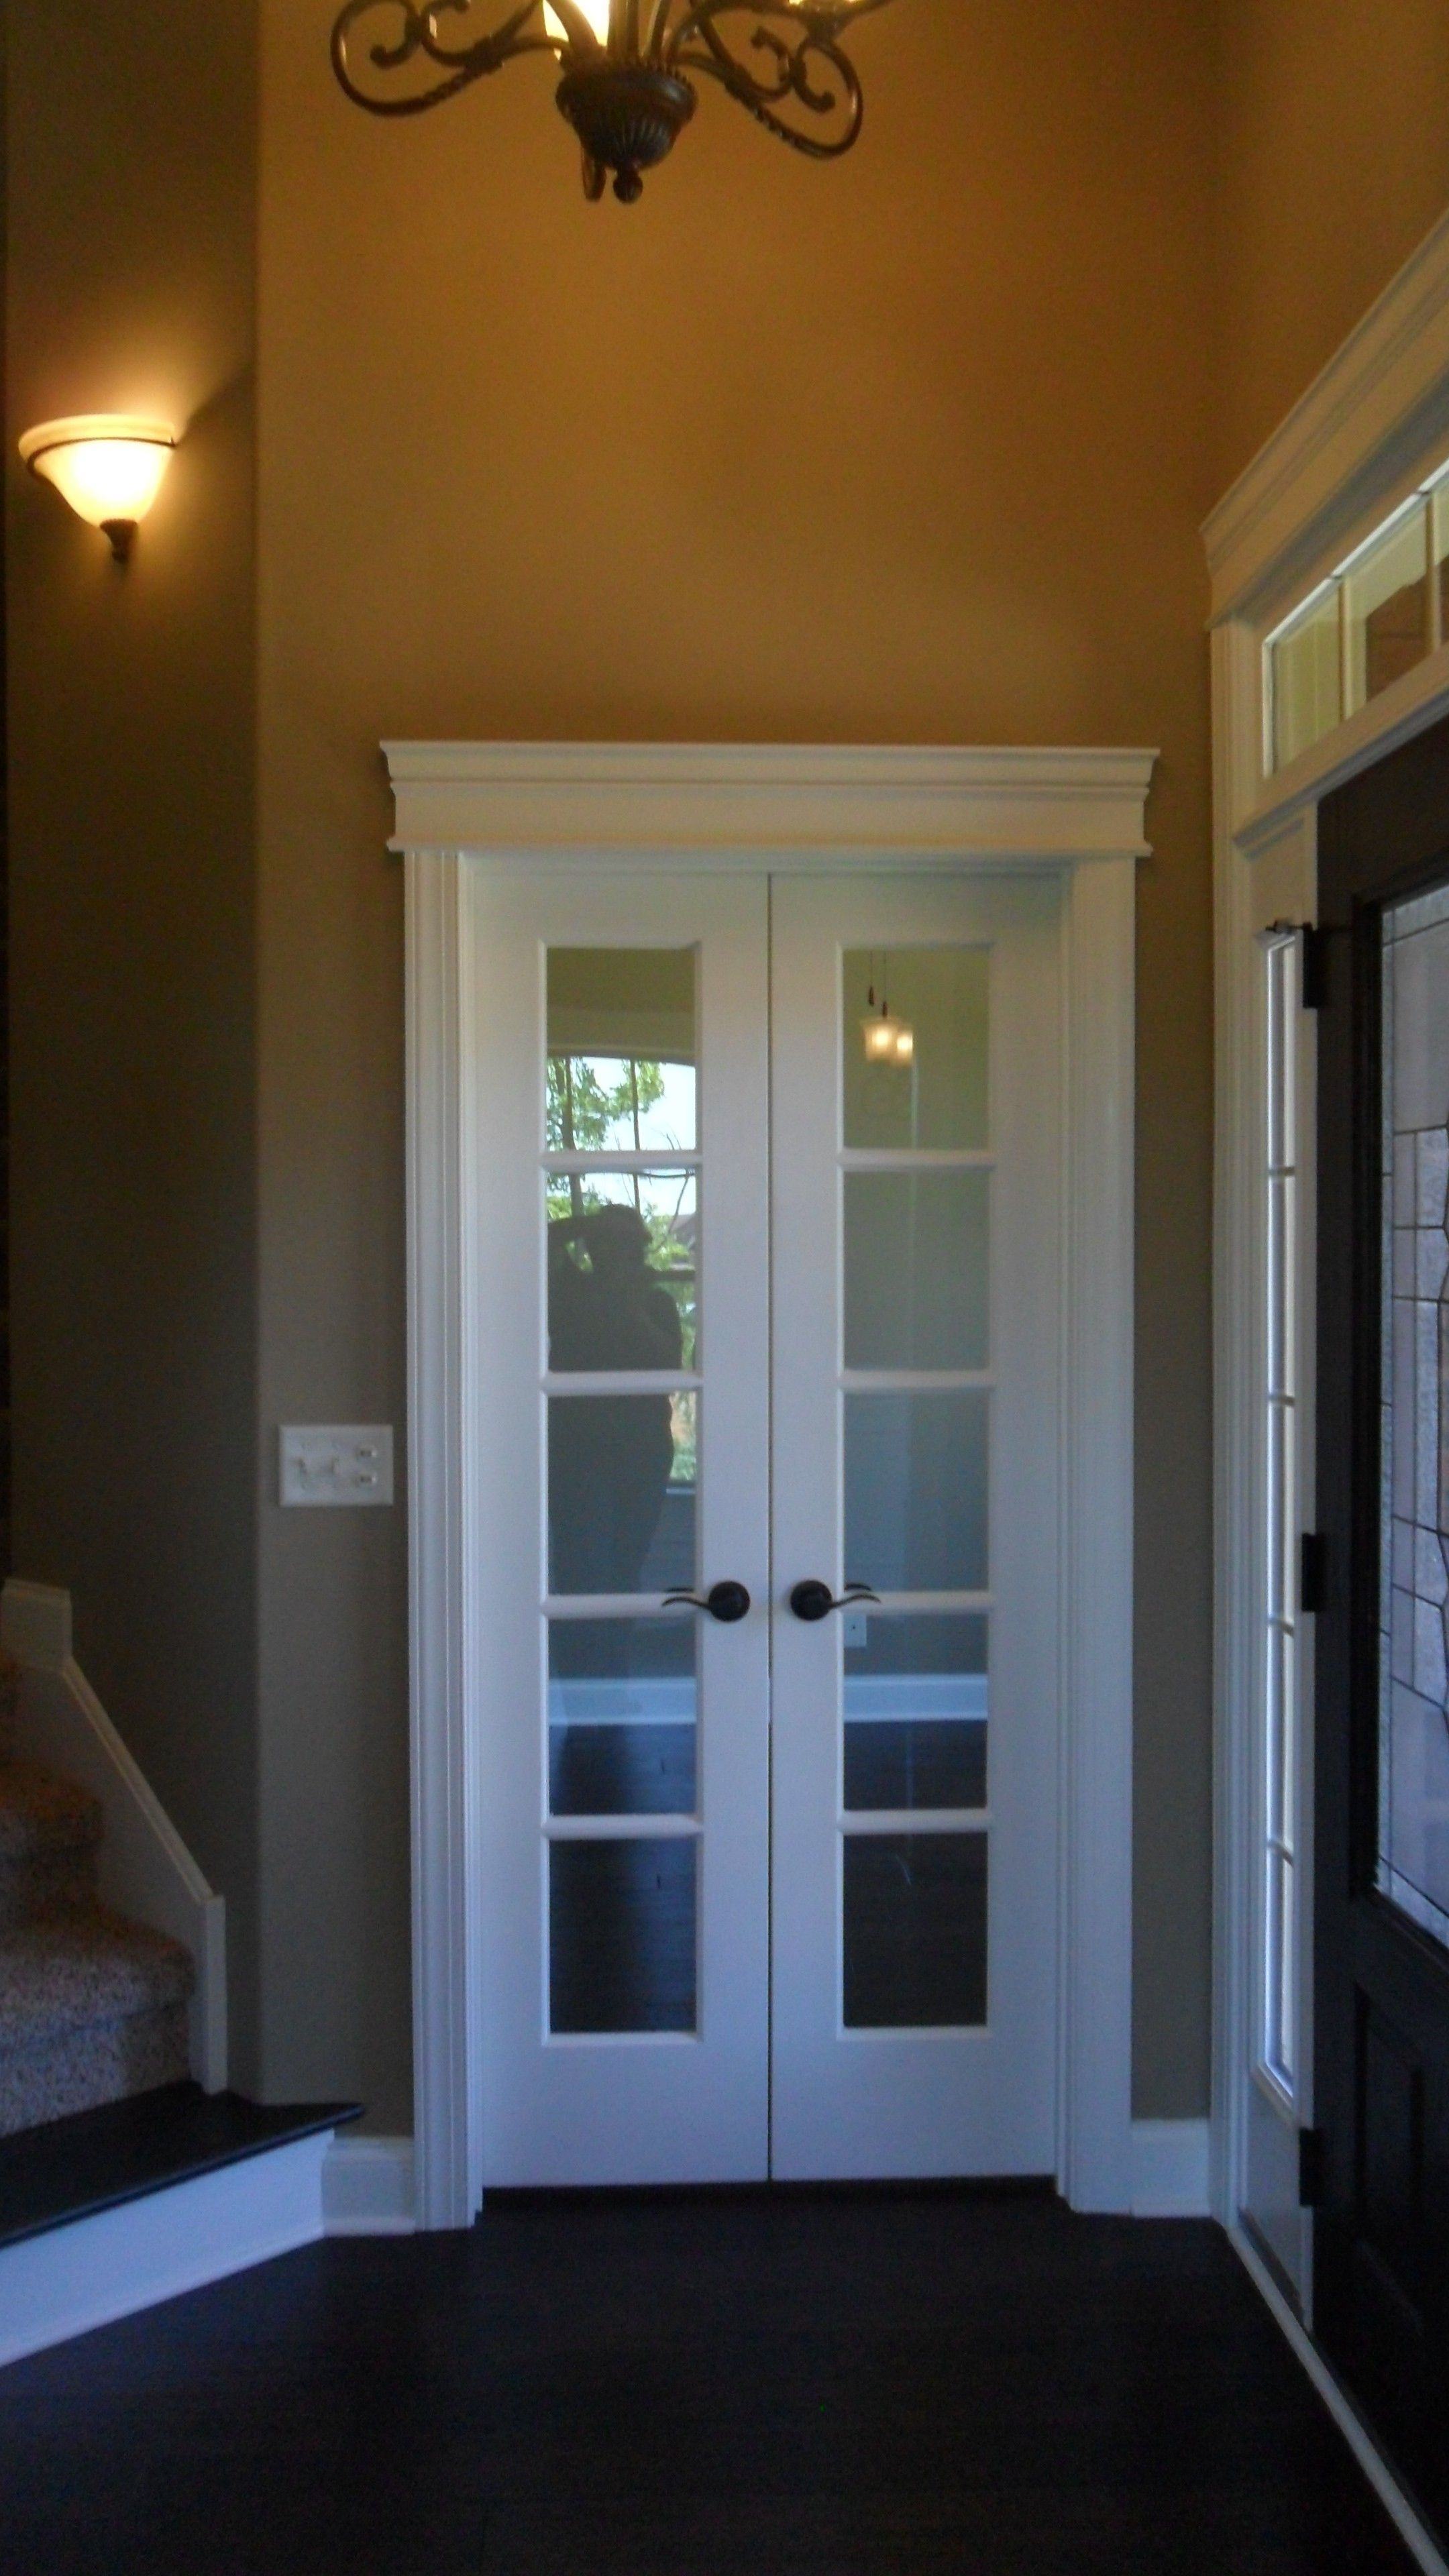 Pin By Home Interior Decor On Reni S Decor Love French Doors Interior Narrow French Doors French Doors